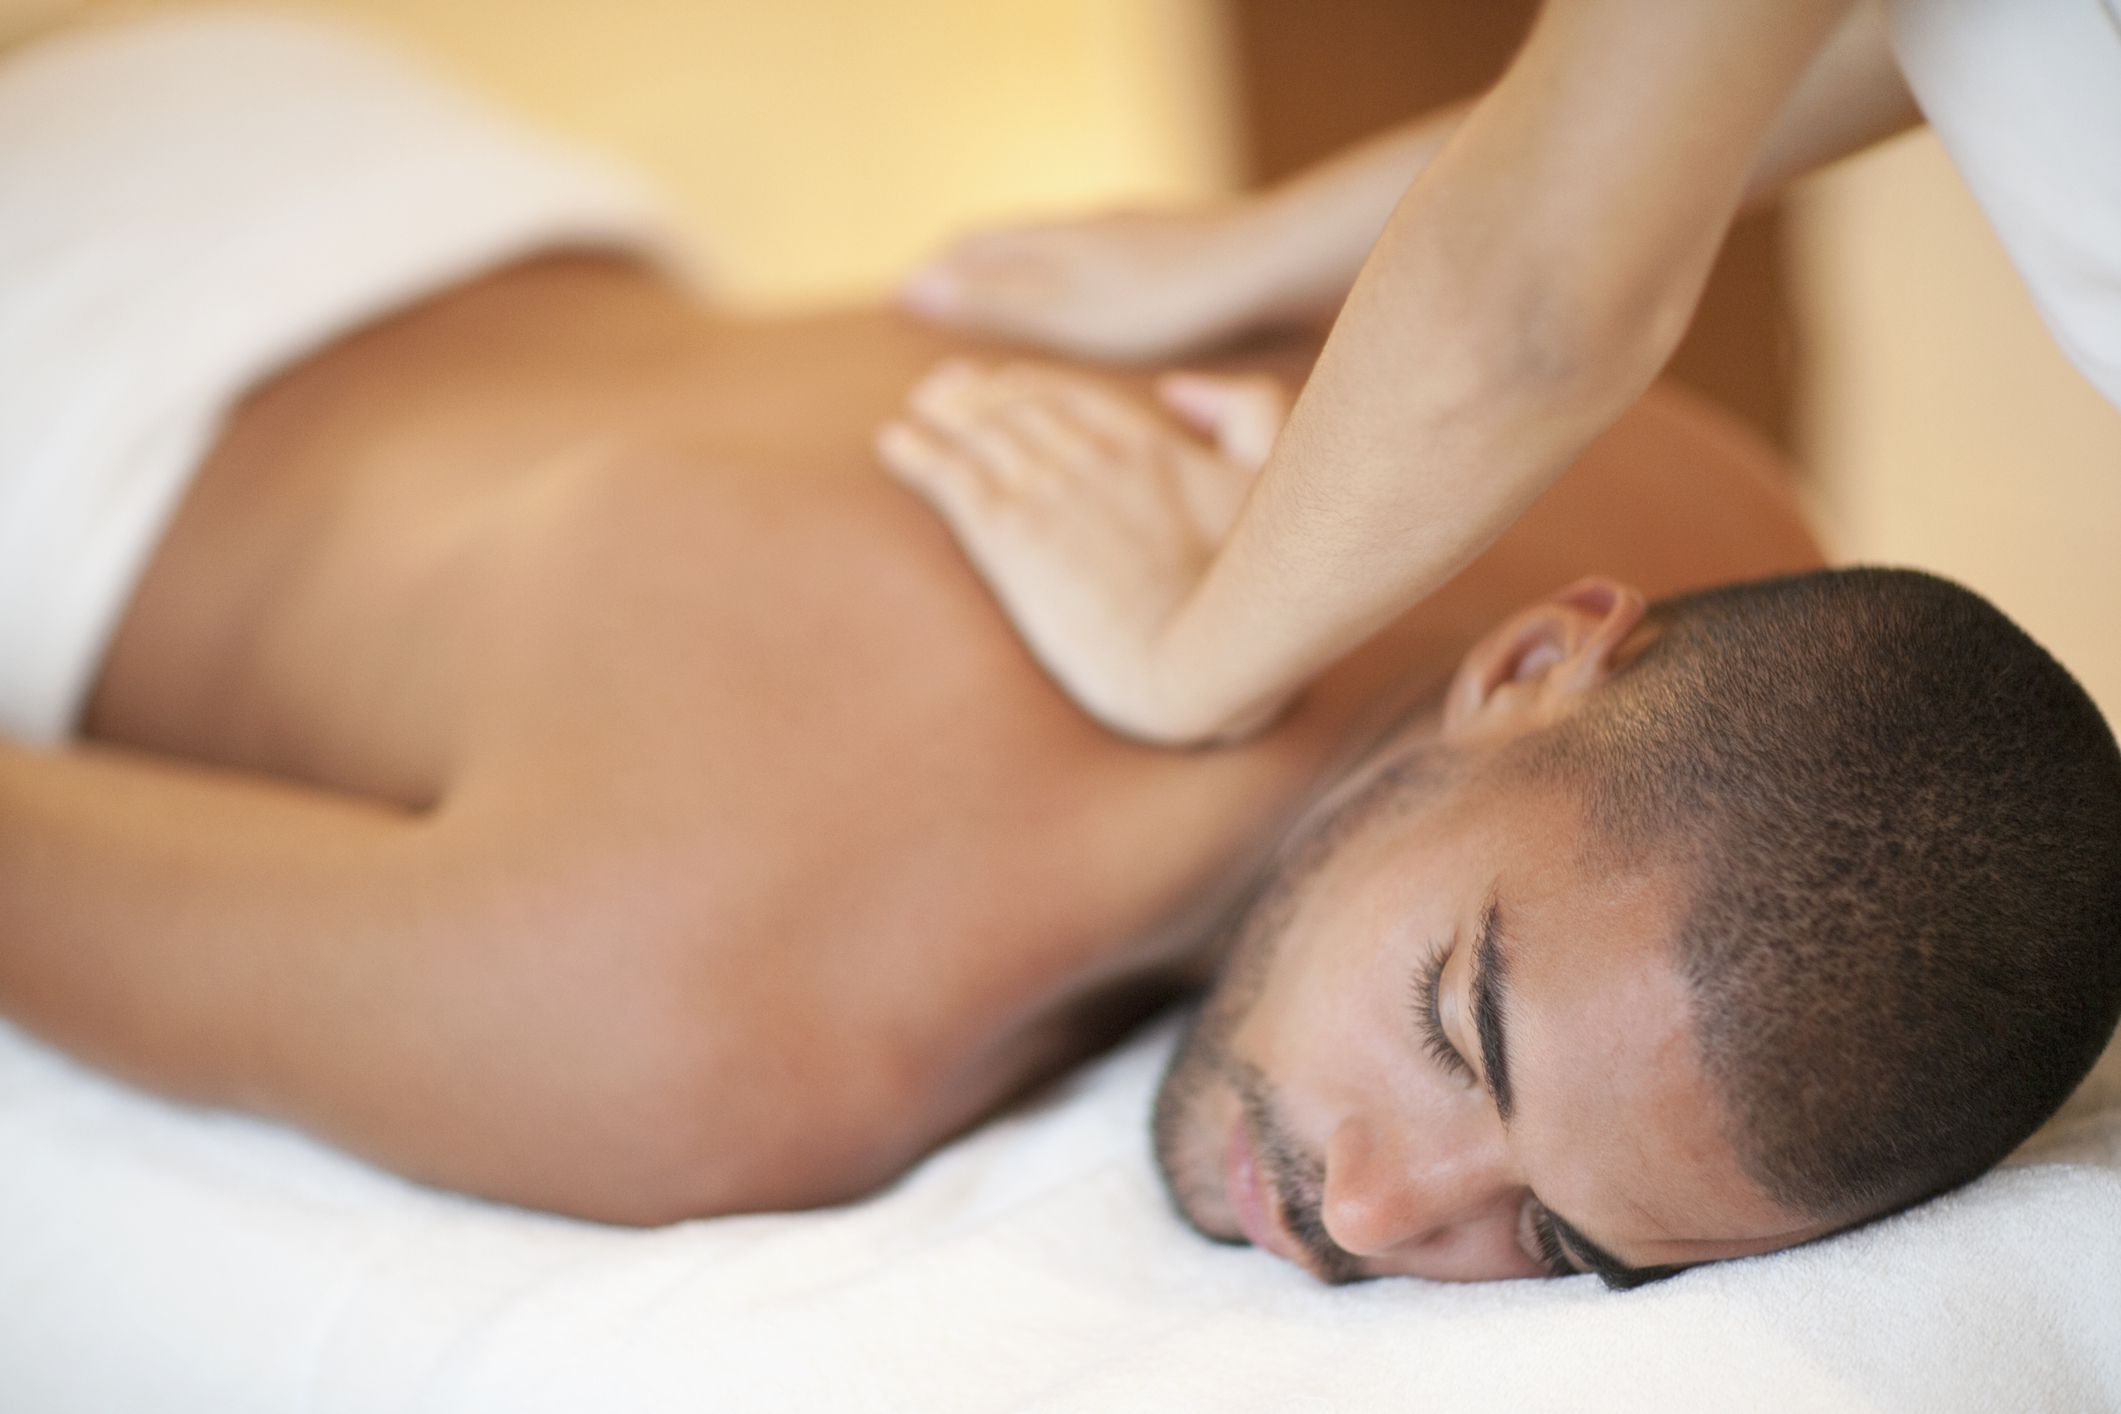 Mind Your Manners on the Massage Table